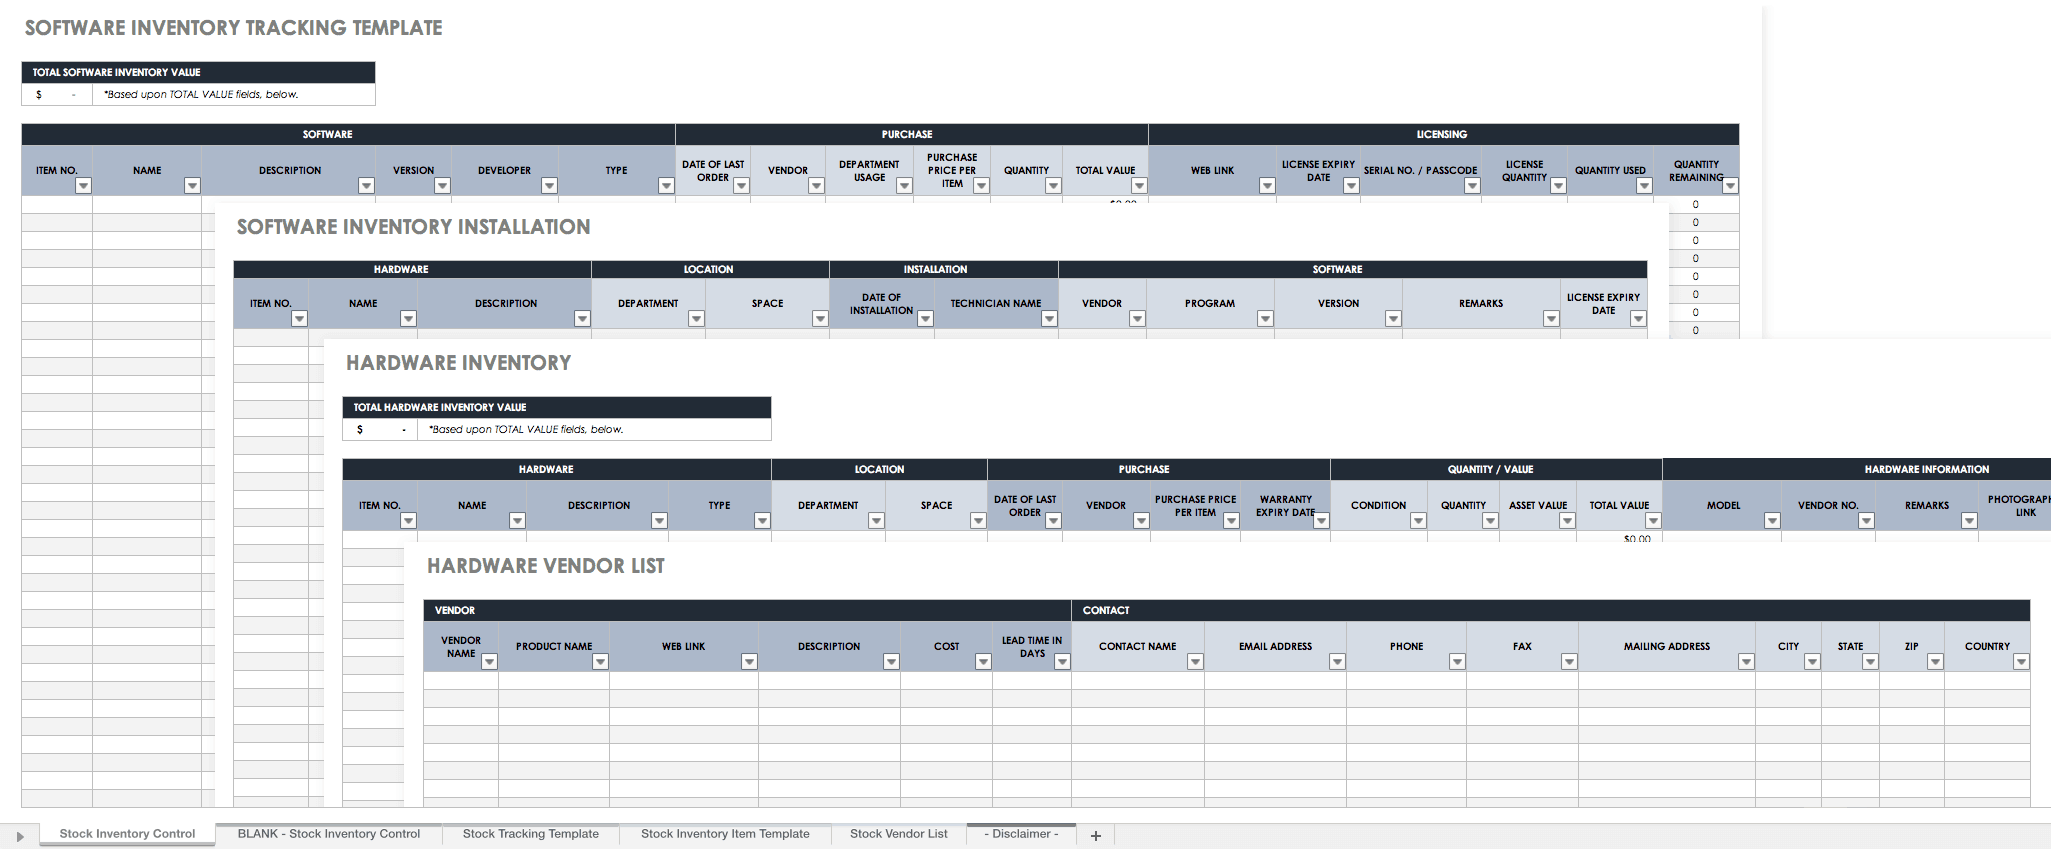 Free Excel Inventory Templates: Create & Manage | Smartsheet